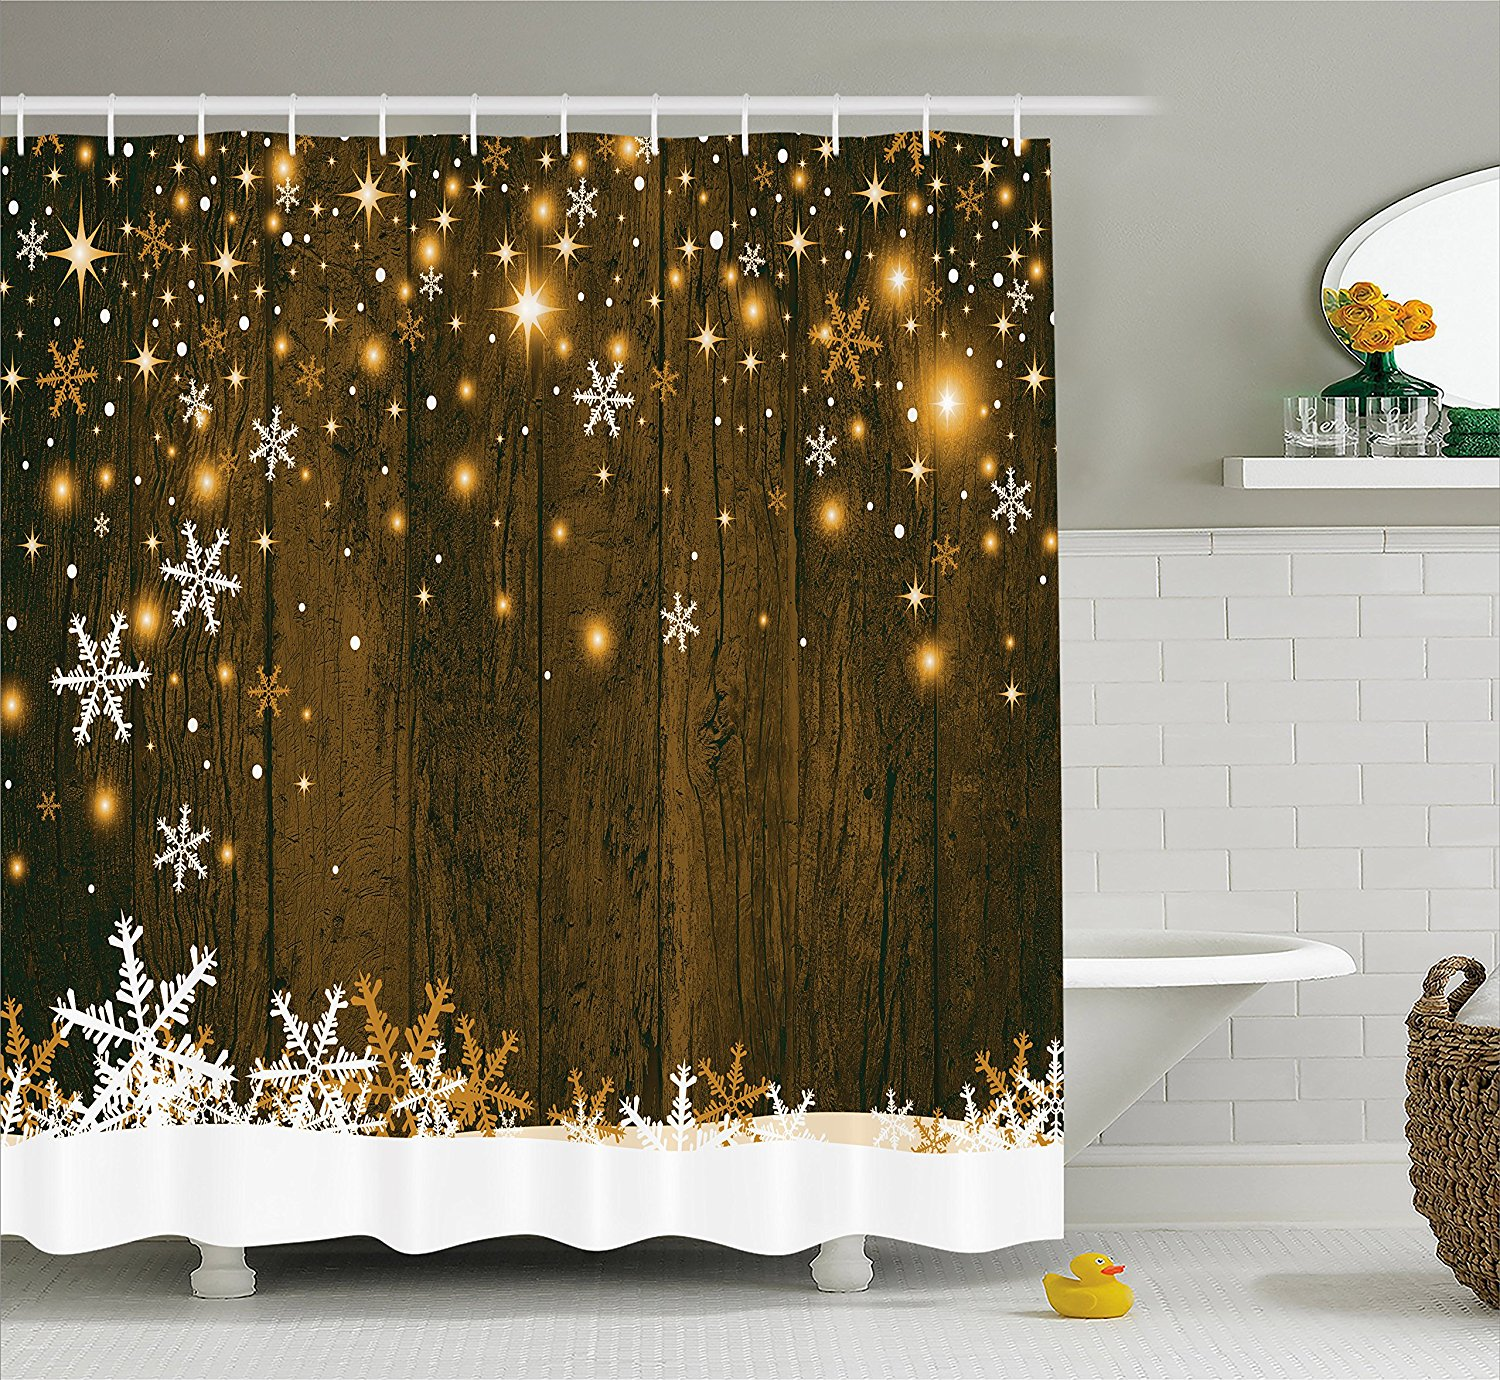 Us 12 8 30 Off Christmas Shower Curtain Snowflake Rustic Christmas Decorations Brown Wooden Fabric Bathroom Set Backdrop With Snowflakes In Shower